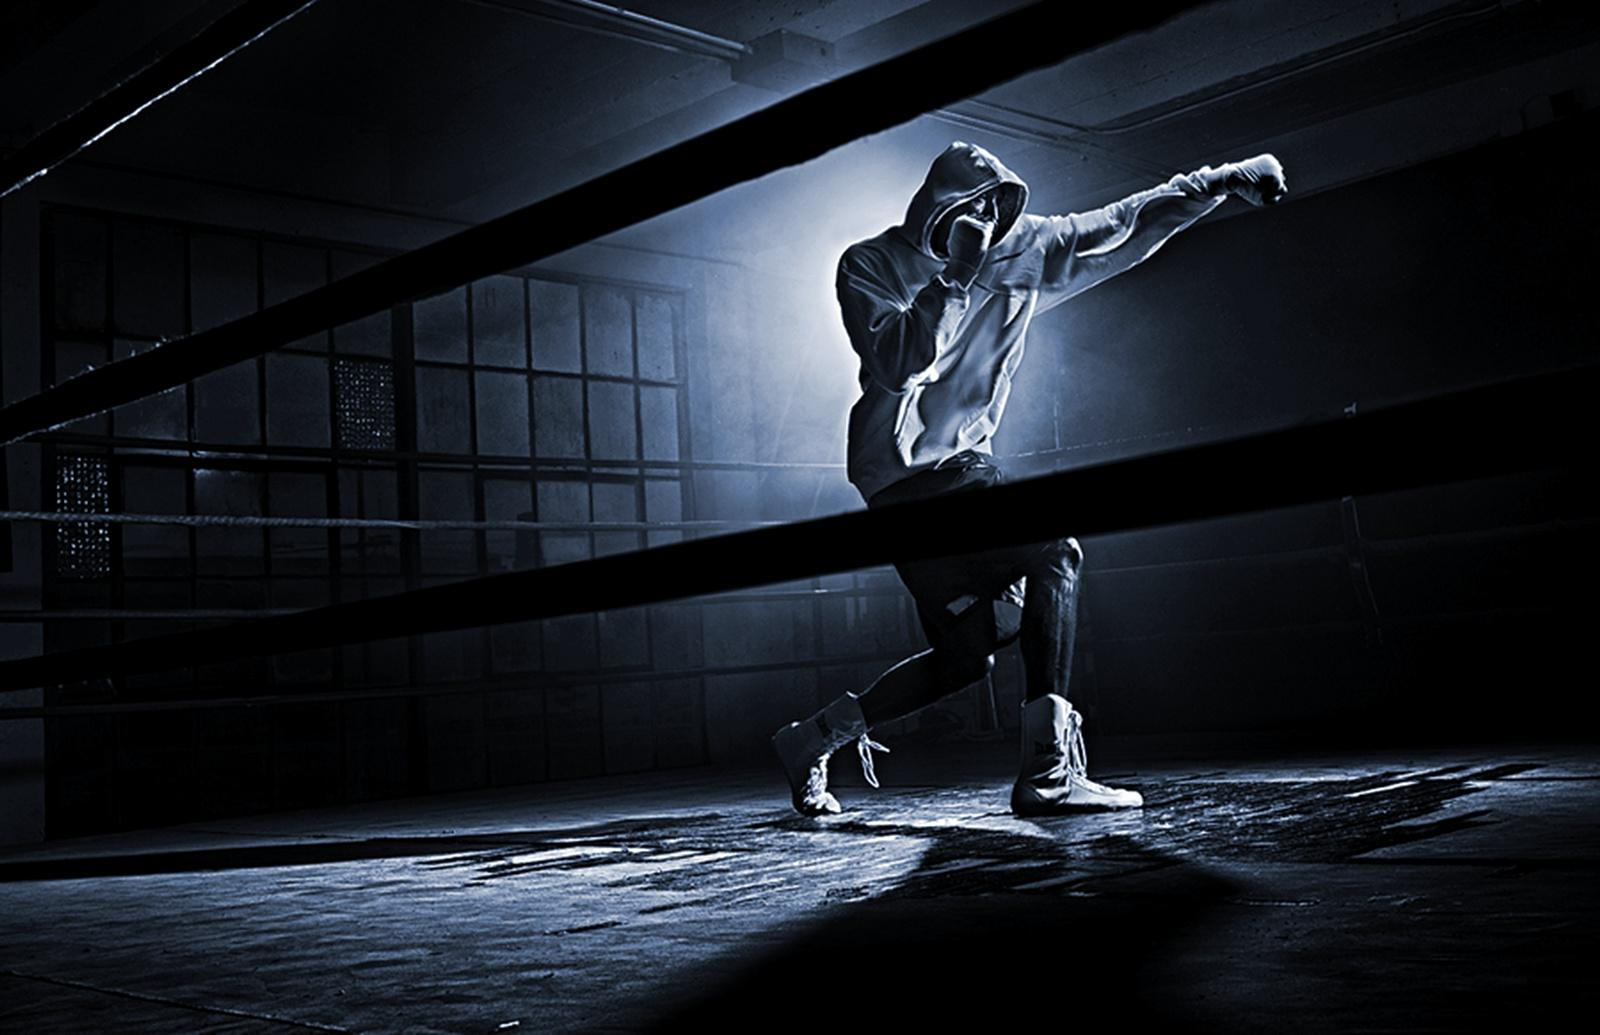 pakistan not to participate in asian boxing championship - pkkh.tv